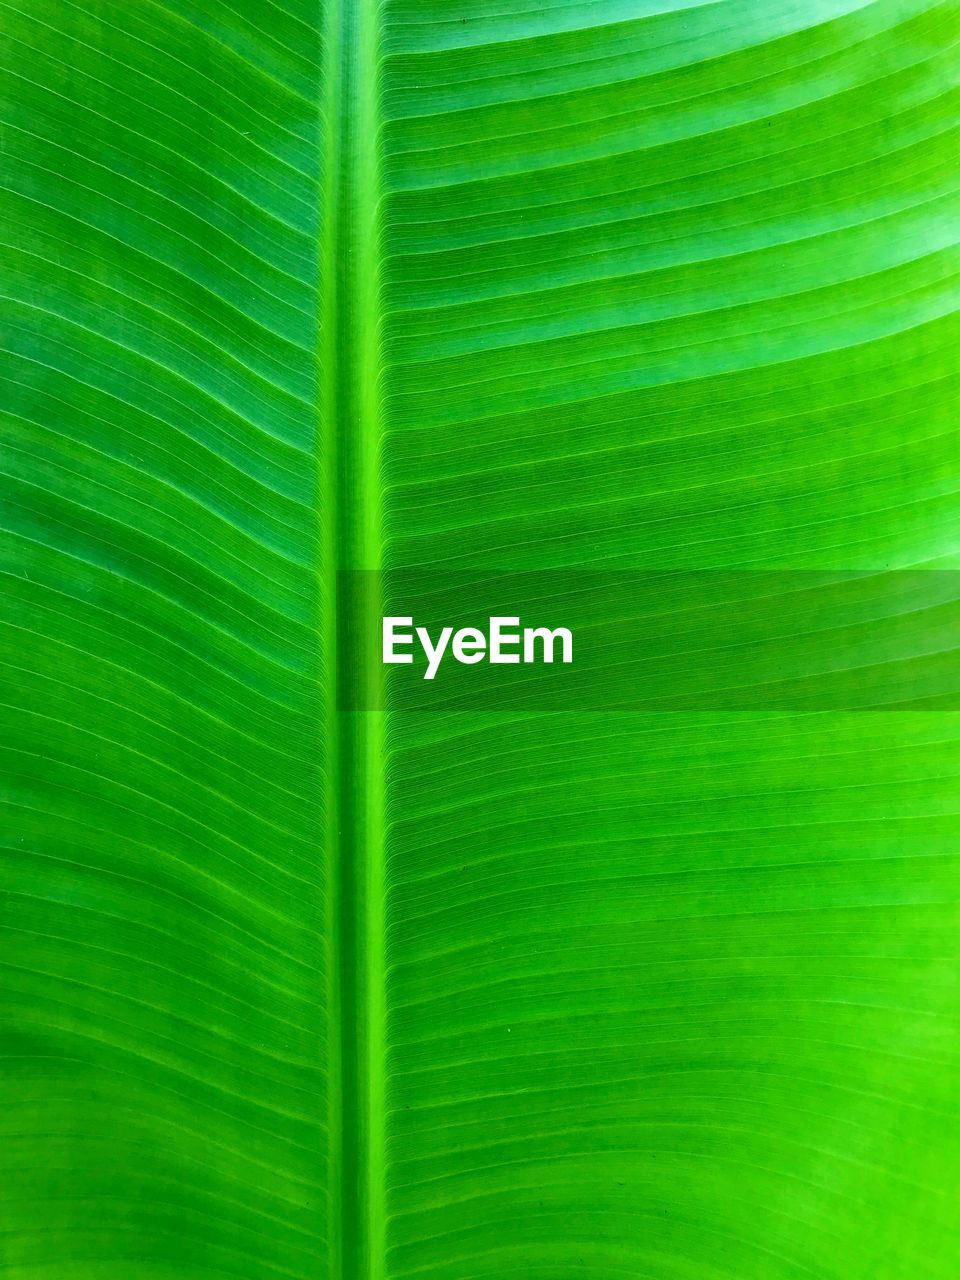 leaf, plant part, backgrounds, green color, full frame, pattern, no people, natural pattern, close-up, leaf vein, banana leaf, beauty in nature, nature, plant, leaves, textured, palm leaf, growth, vulnerability, fragility, outdoors, abstract backgrounds, textured effect